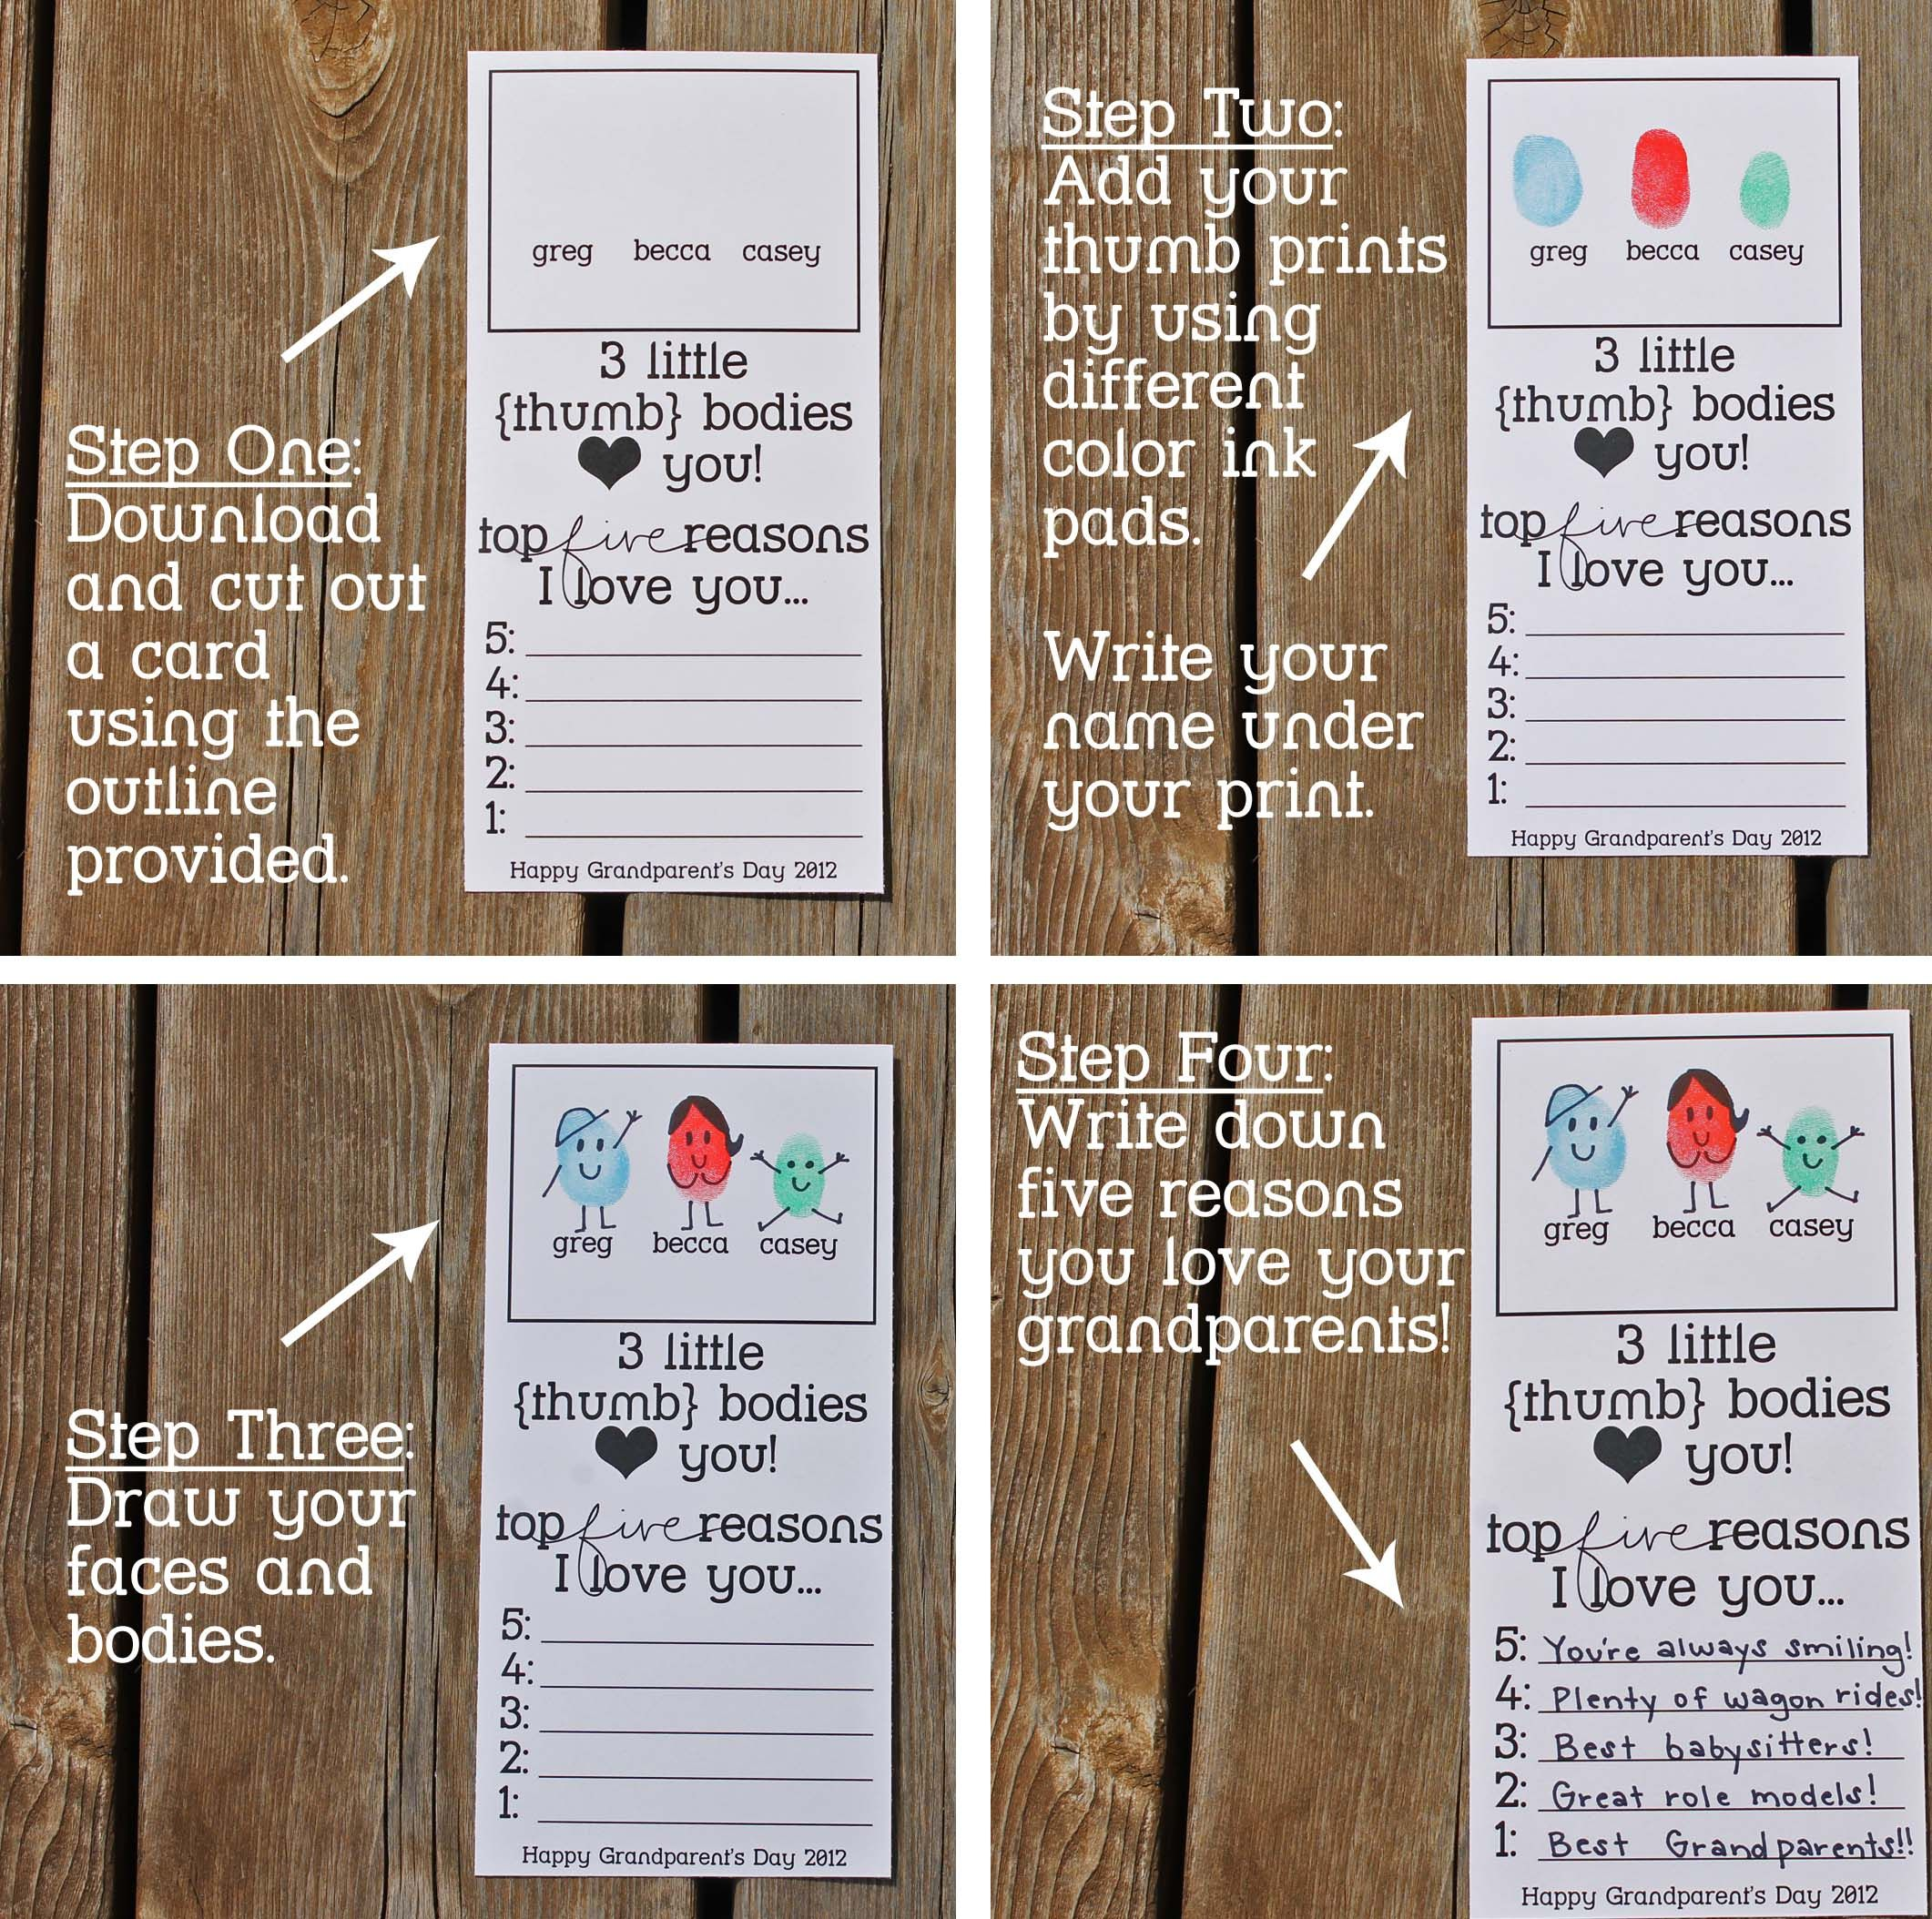 Printable Grandparents Day Thumbprint Cards! Just Add Your